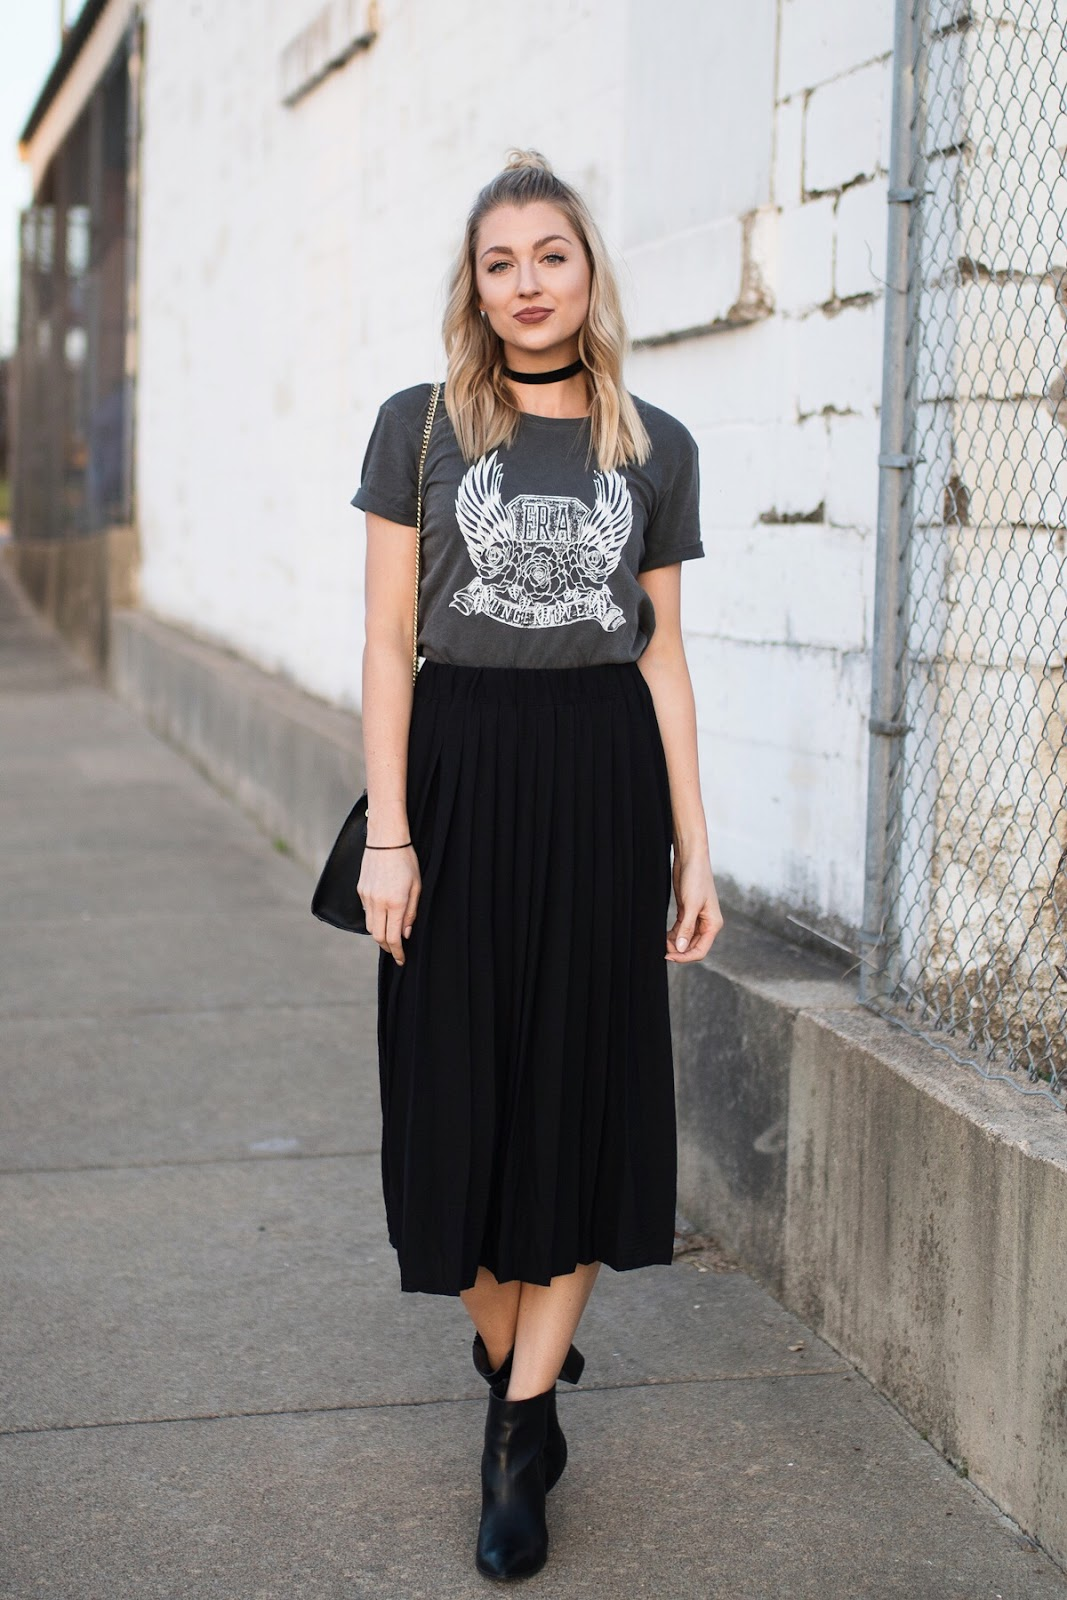 Graphic tee dressed up with a skirt